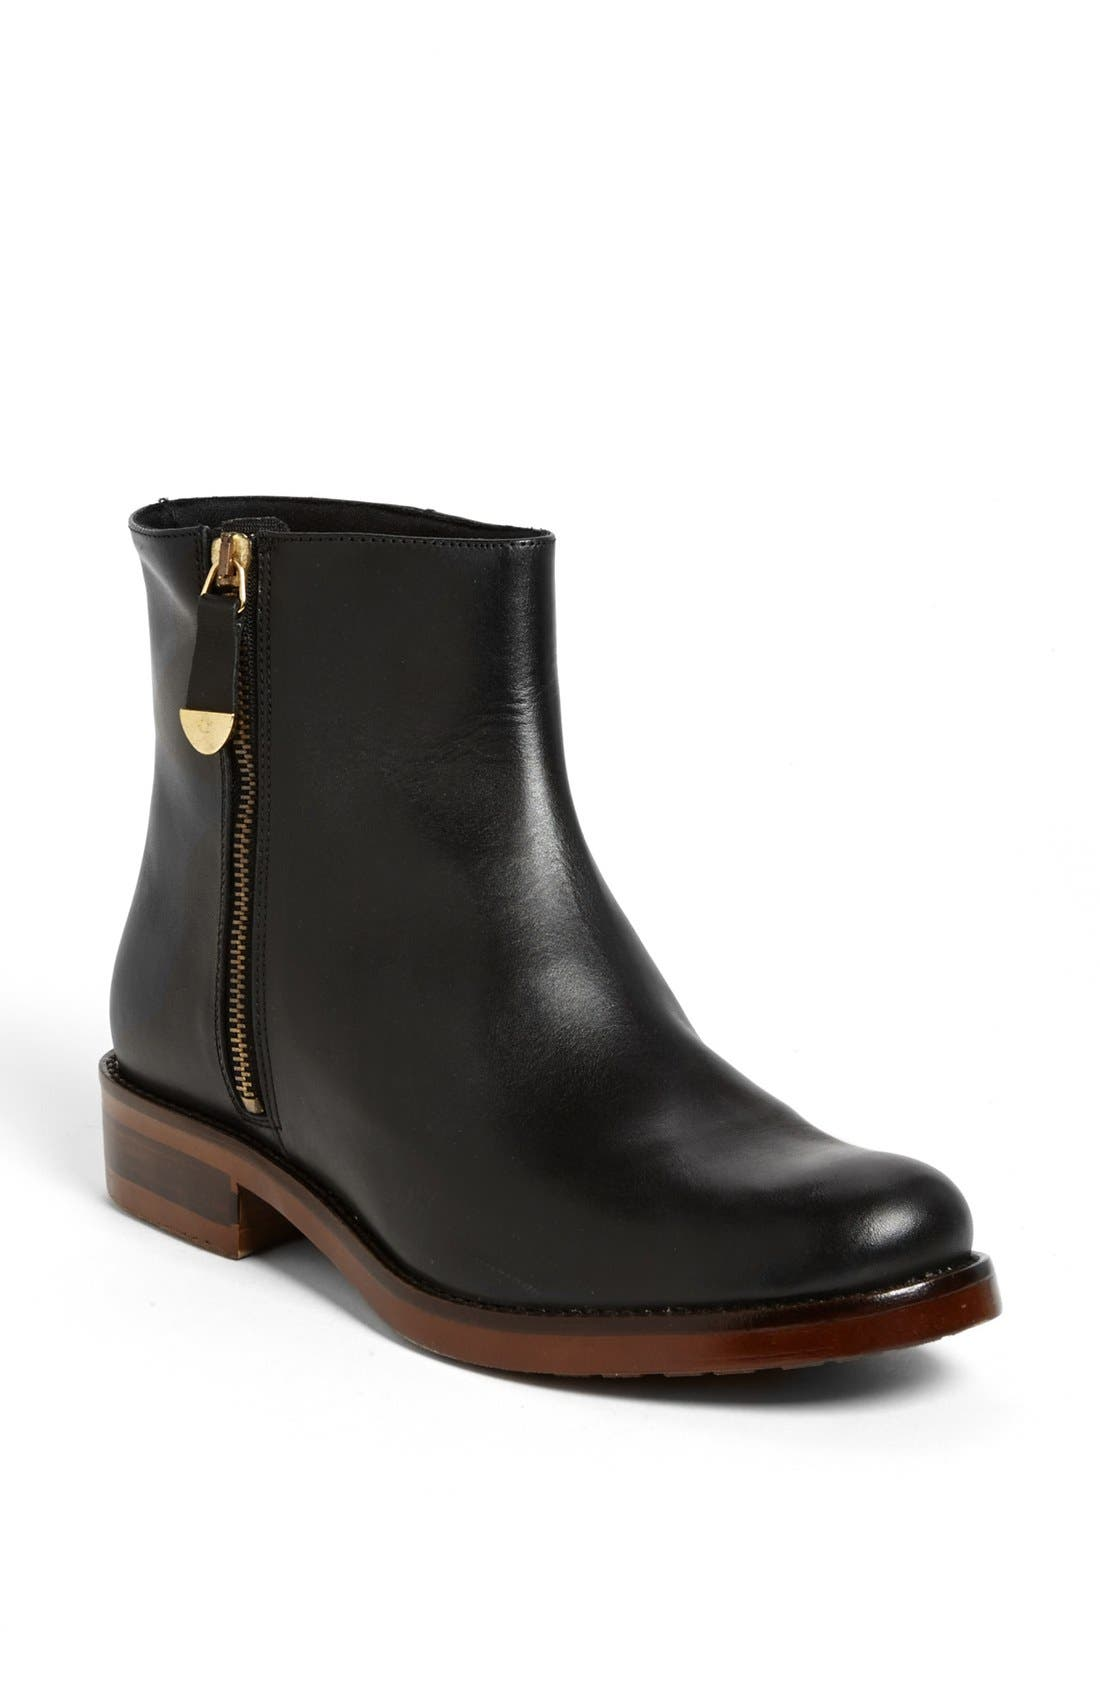 Alternate Image 1 Selected - KG Kurt Geiger 'Sadie' Boot